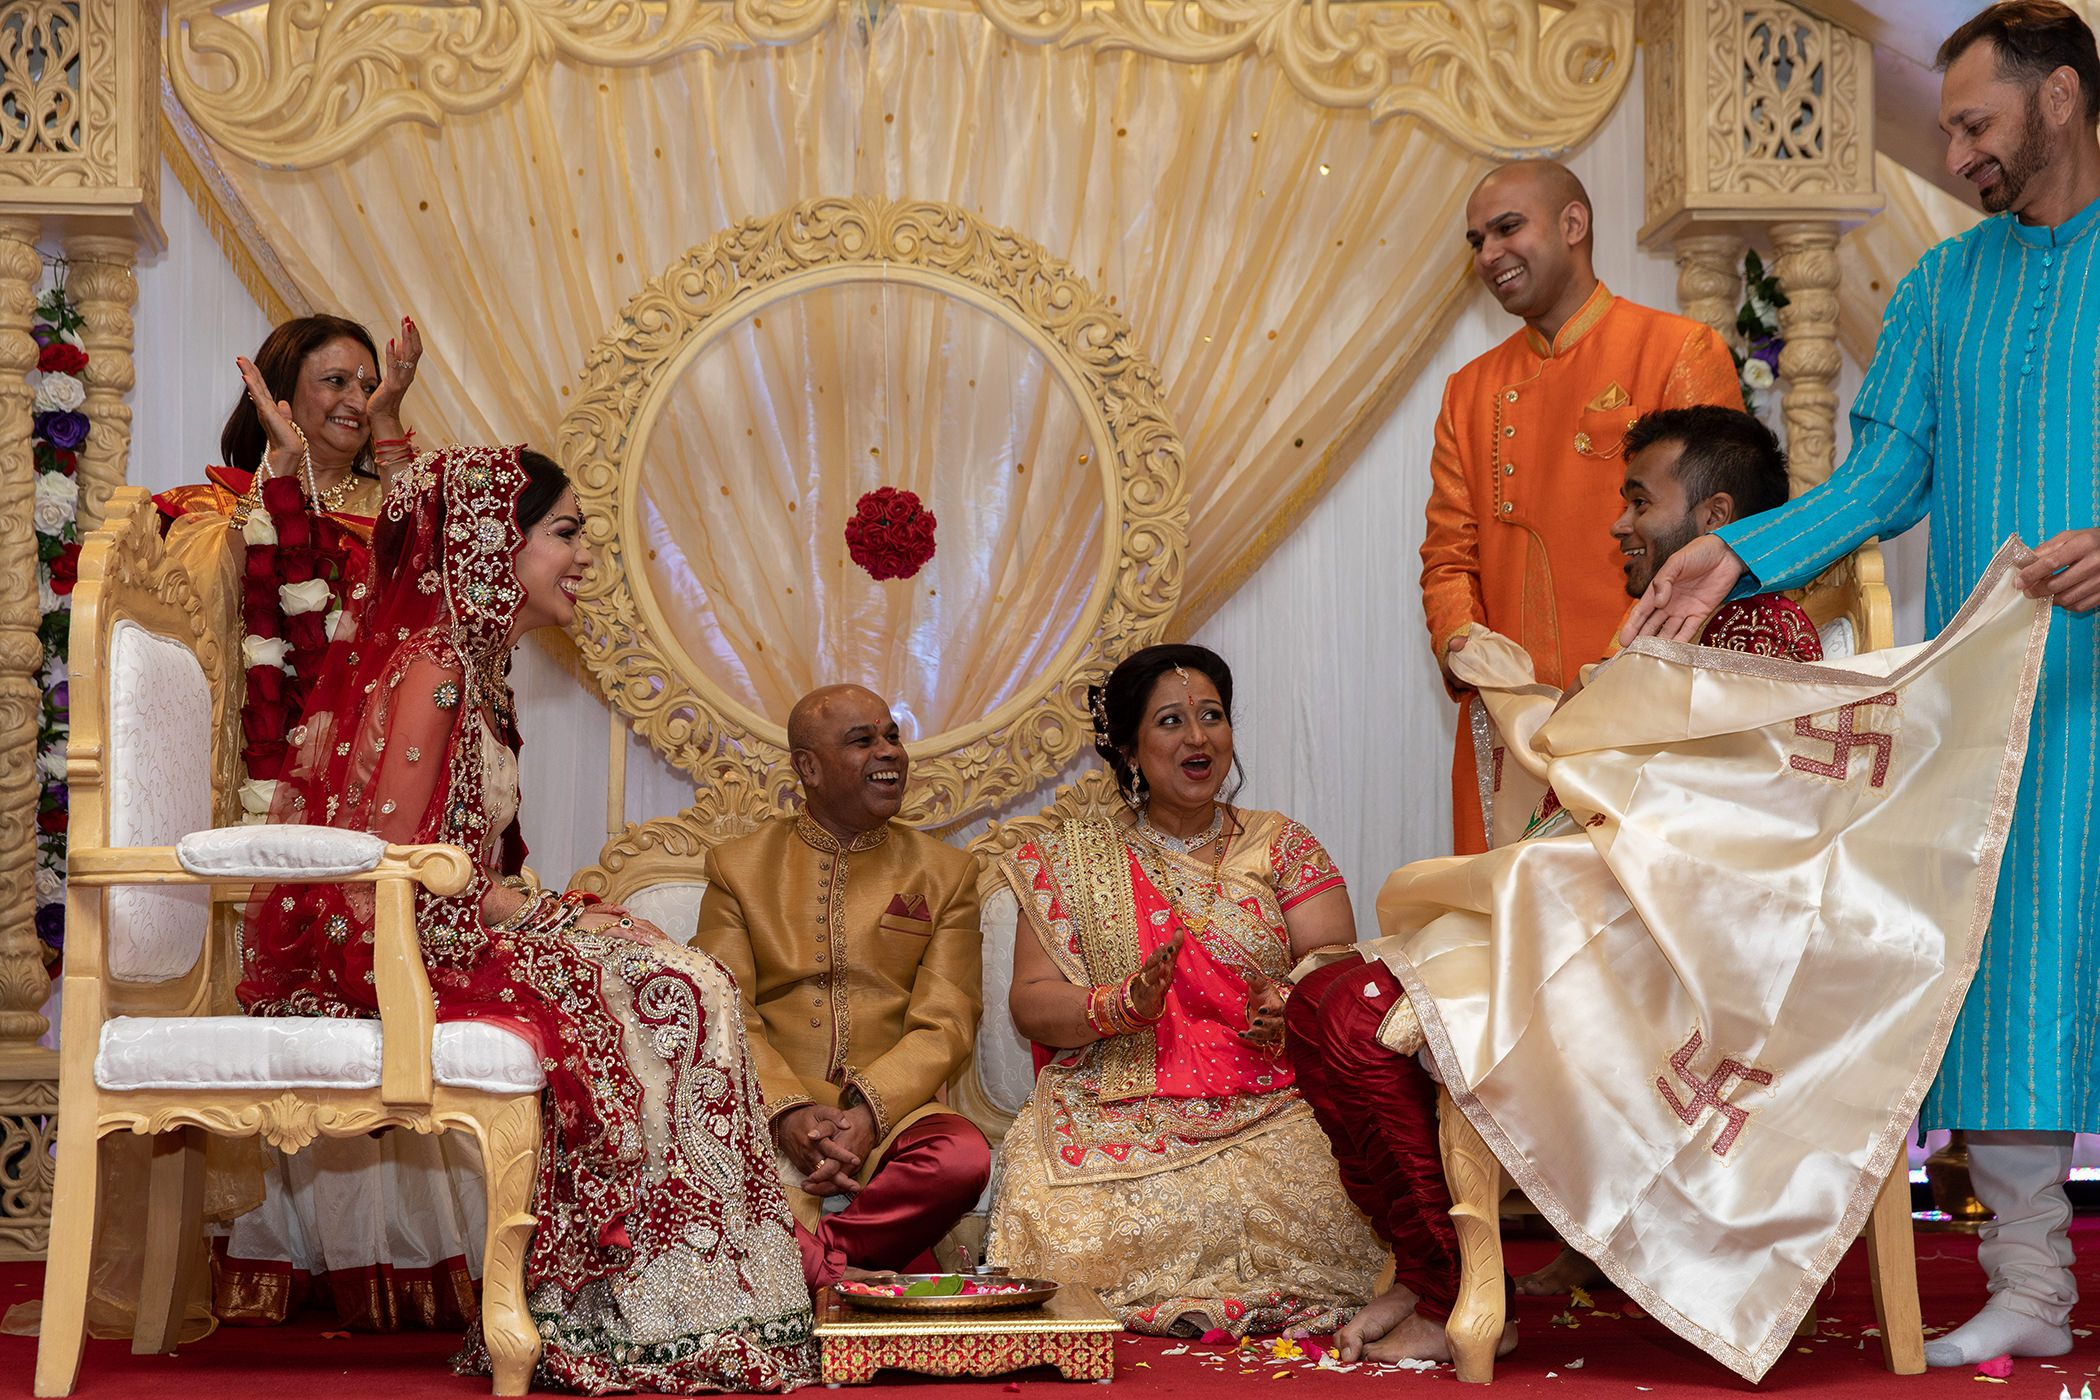 The Indian Wedding Ceremony